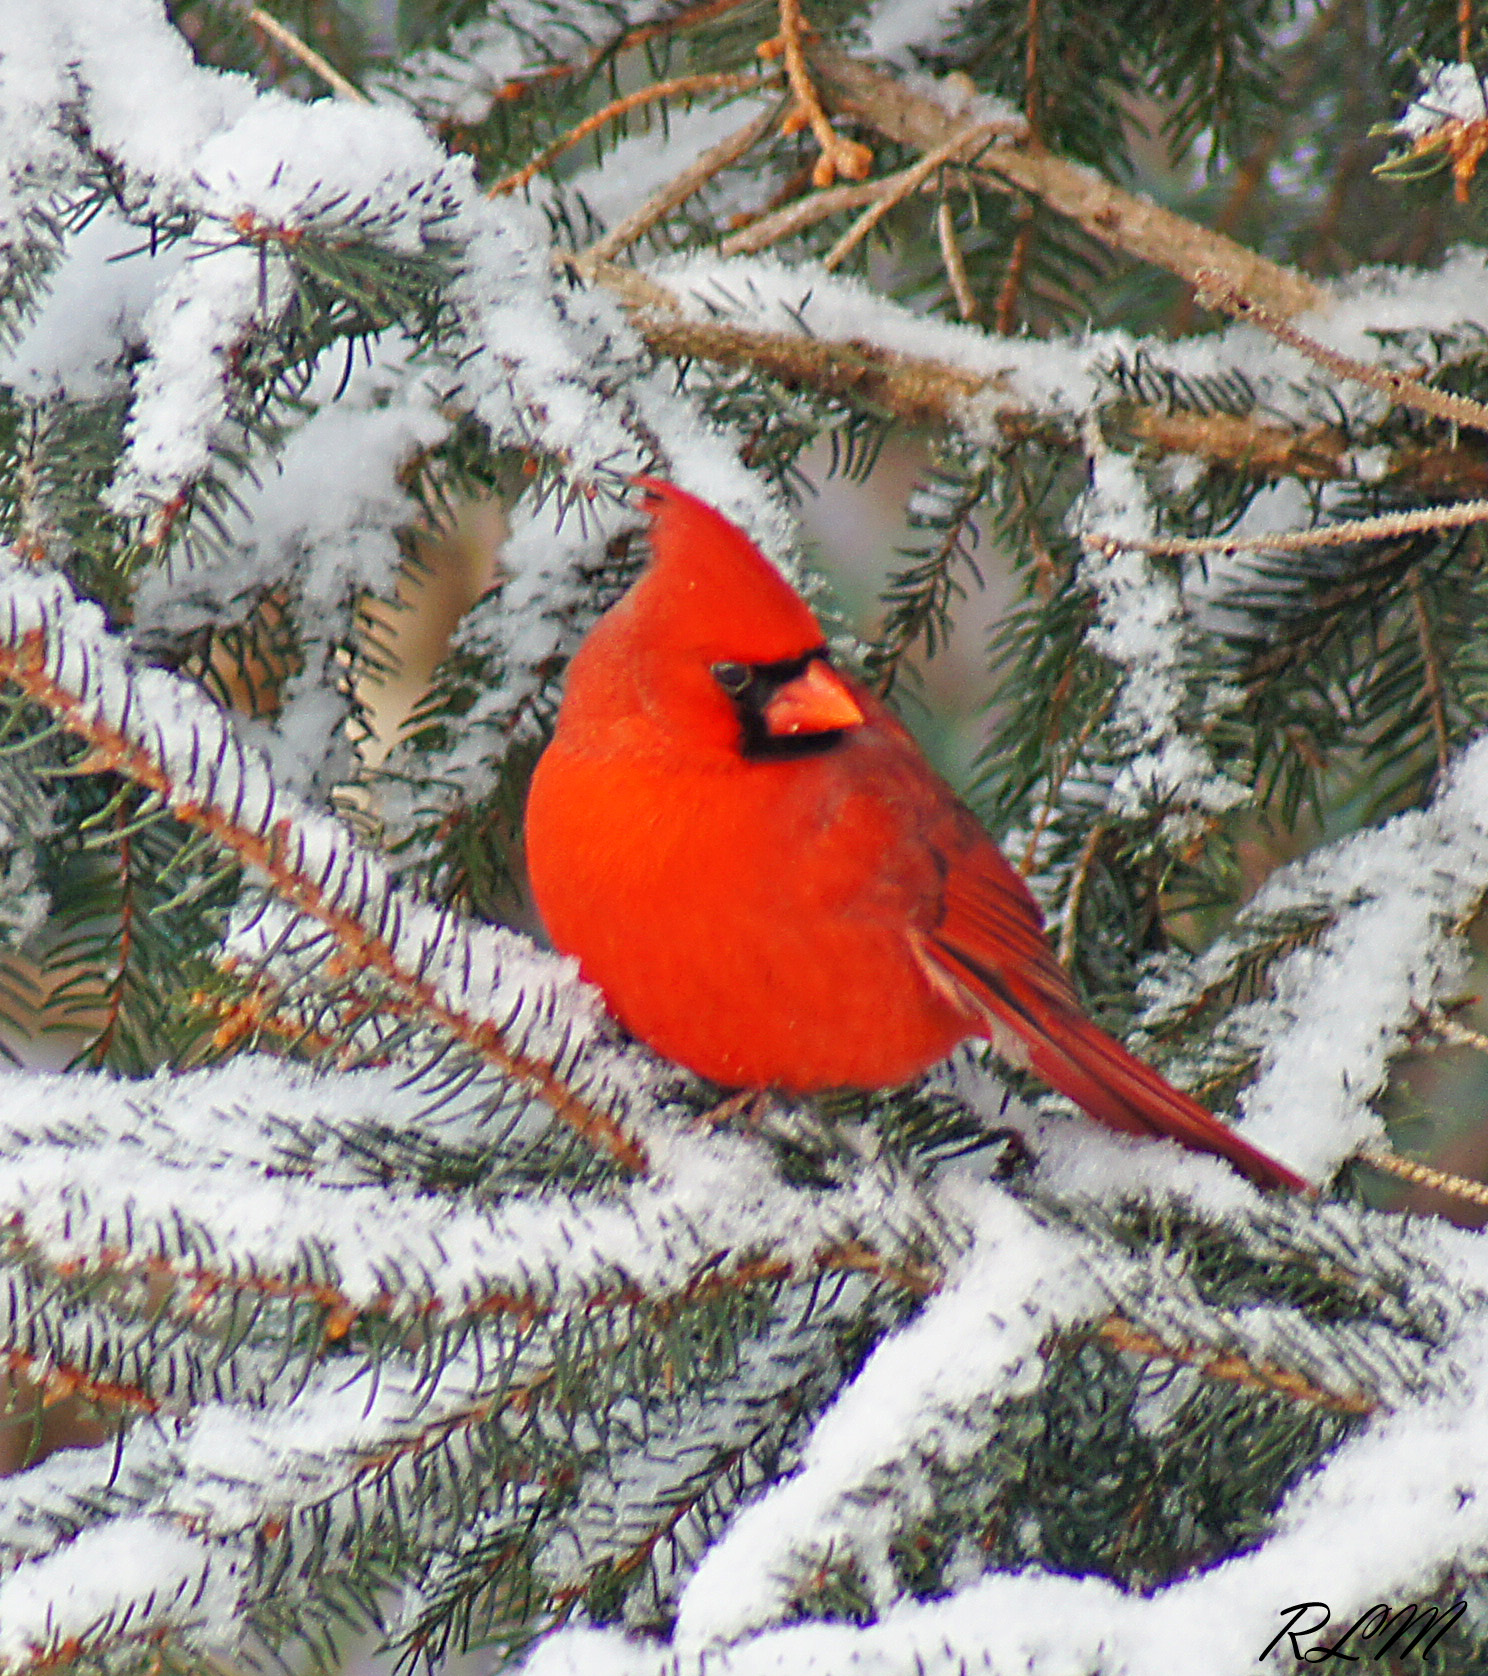 What You Need To Know About Birds in Winter